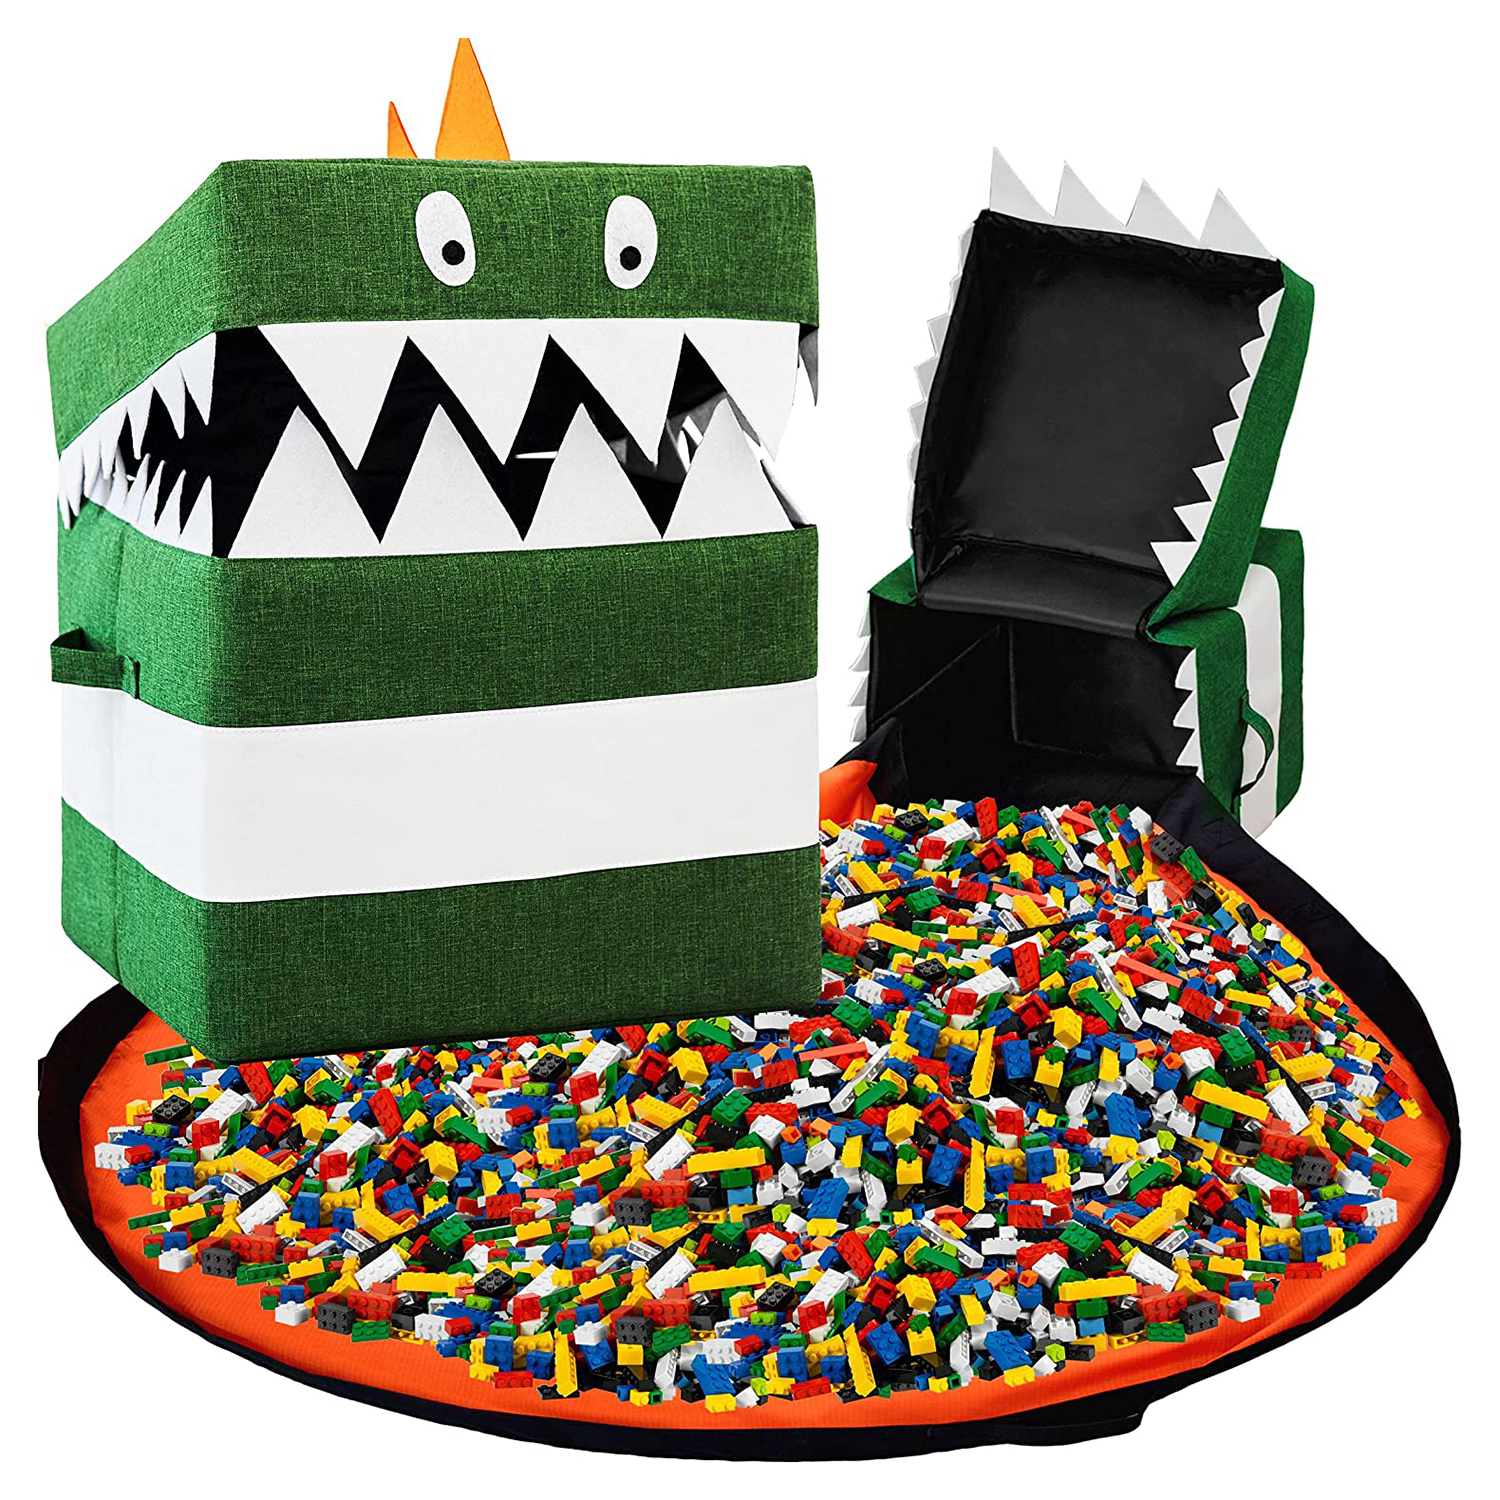 Best for Quick Lego Cleanup: Starsiko Fold-Up Play Mat With Storage Bin